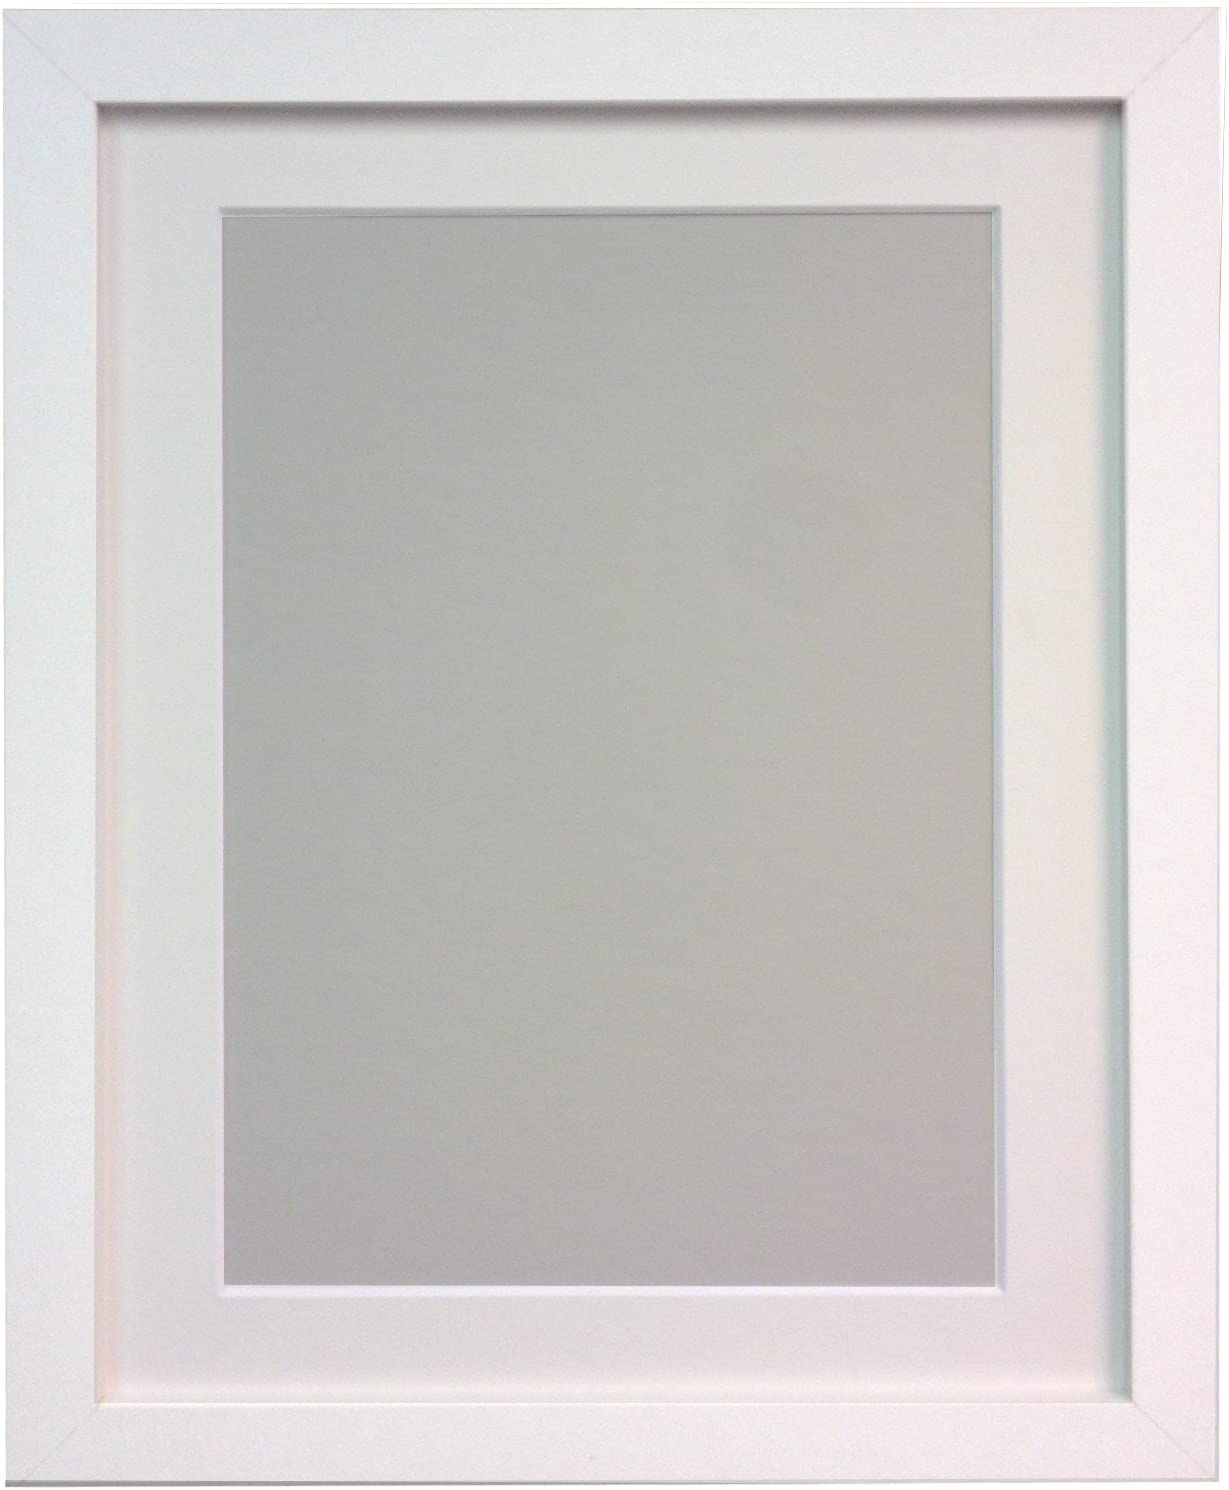 FRAMES BY POST H7 Picture quality Time sale assurance Photo White Mo with Wood Frame